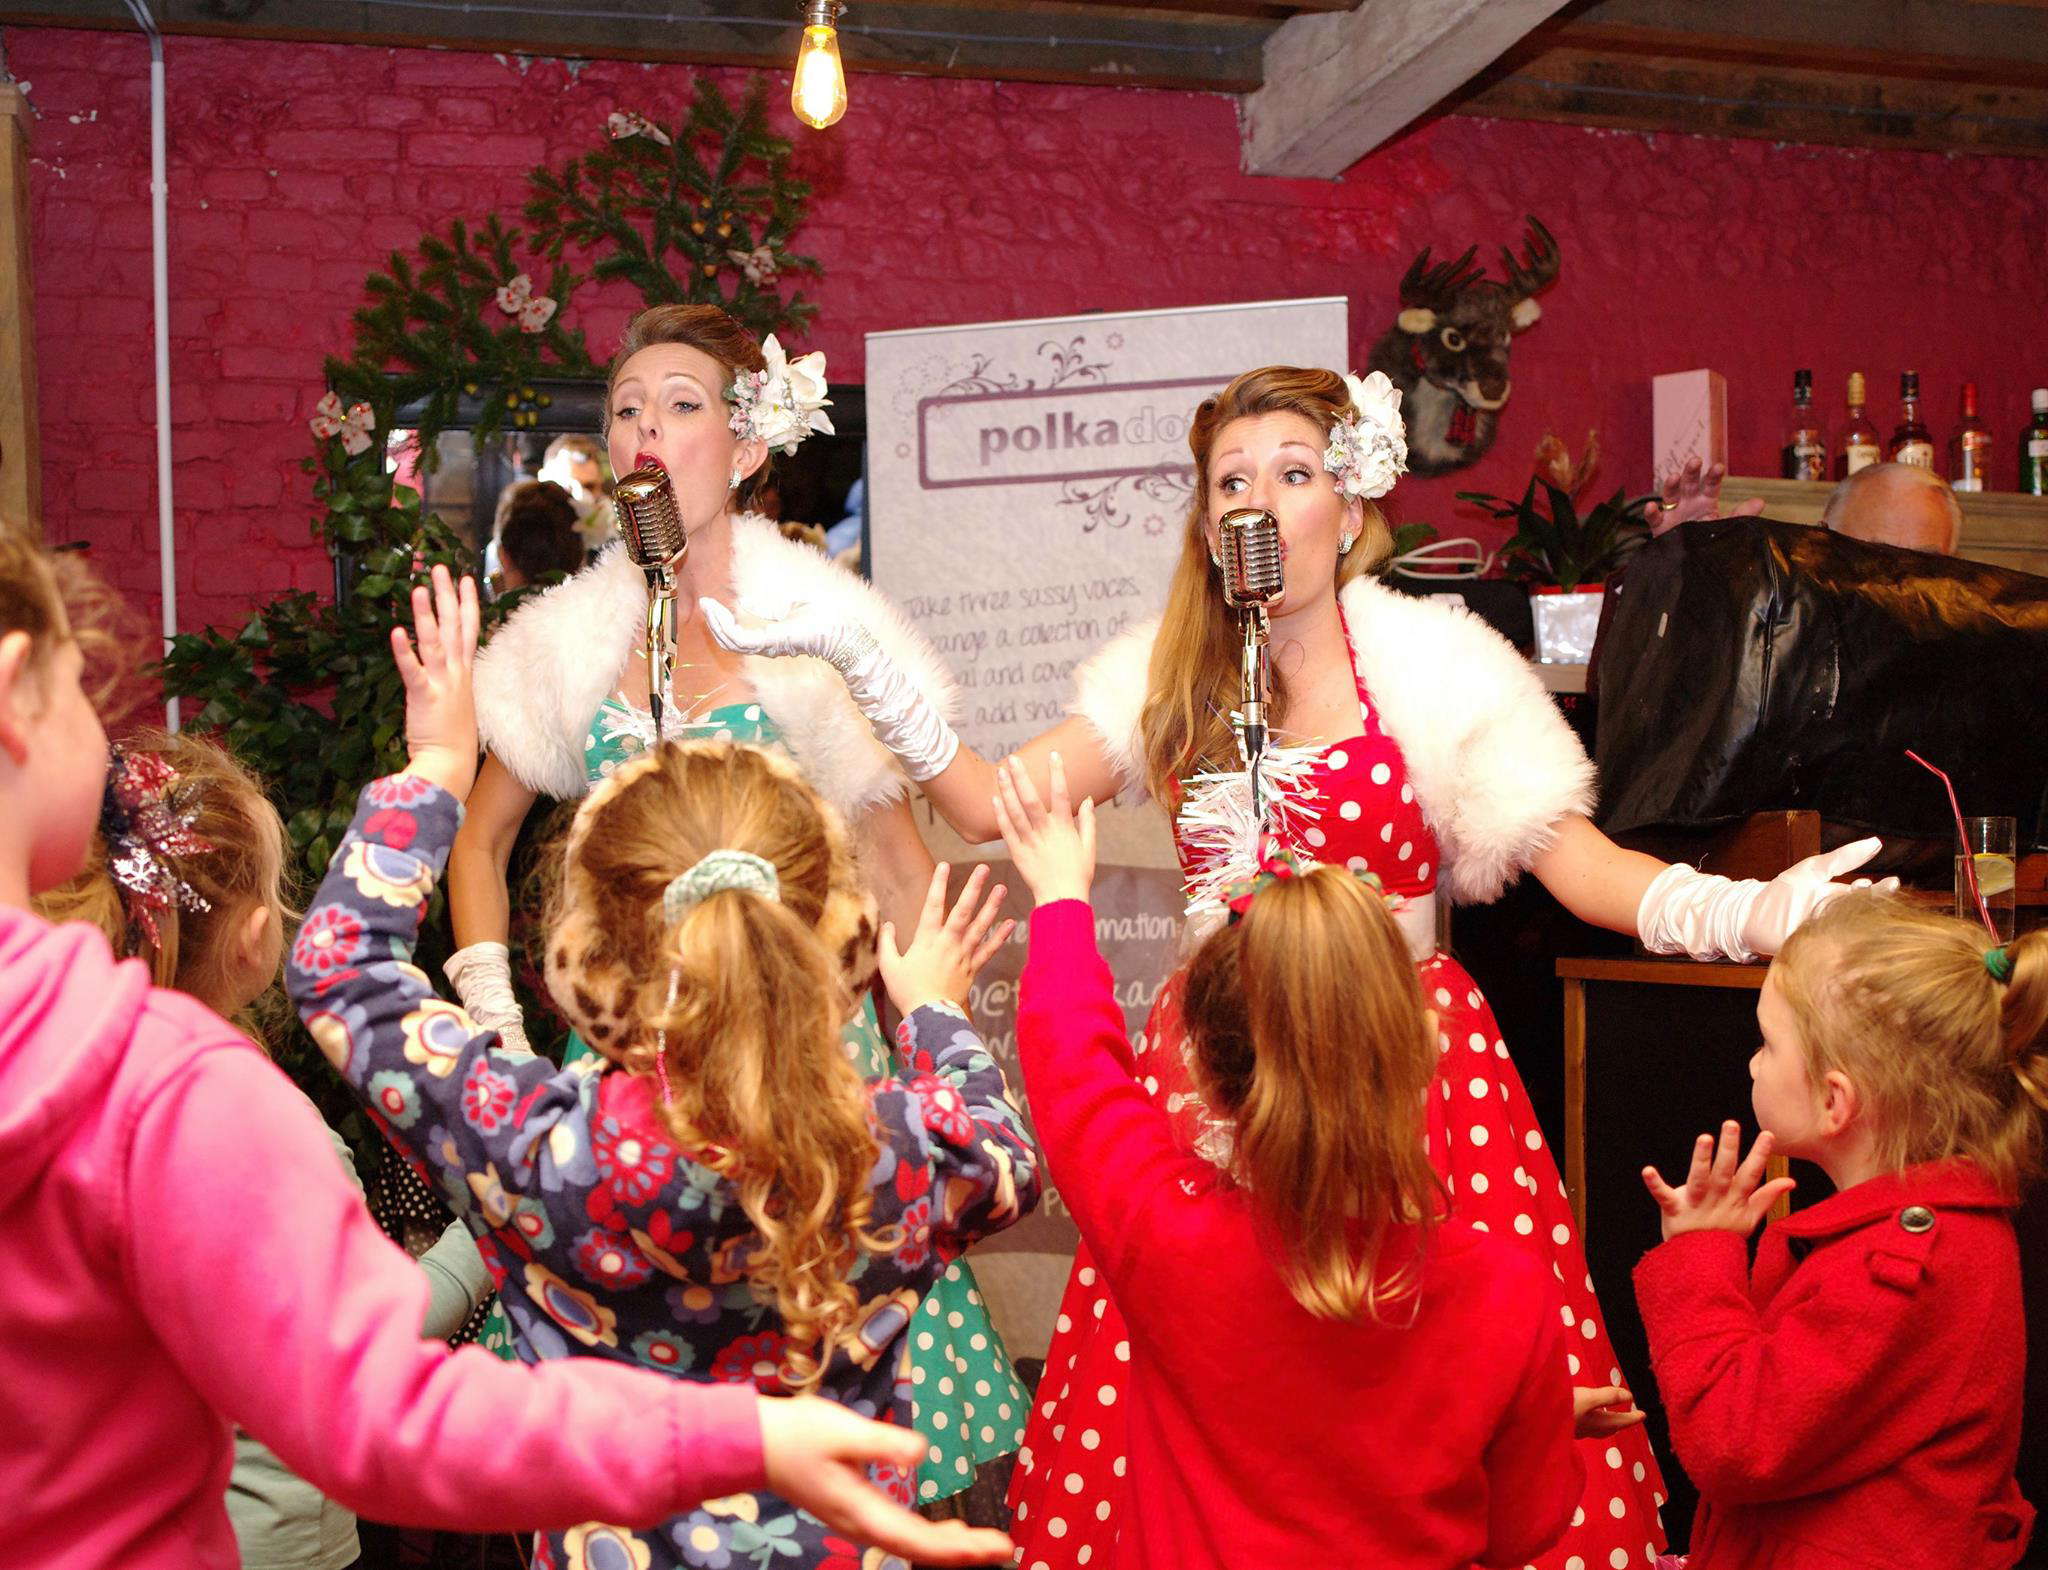 UK BAND-Polka Dots at Kids Event JOHN-HAMBLETON